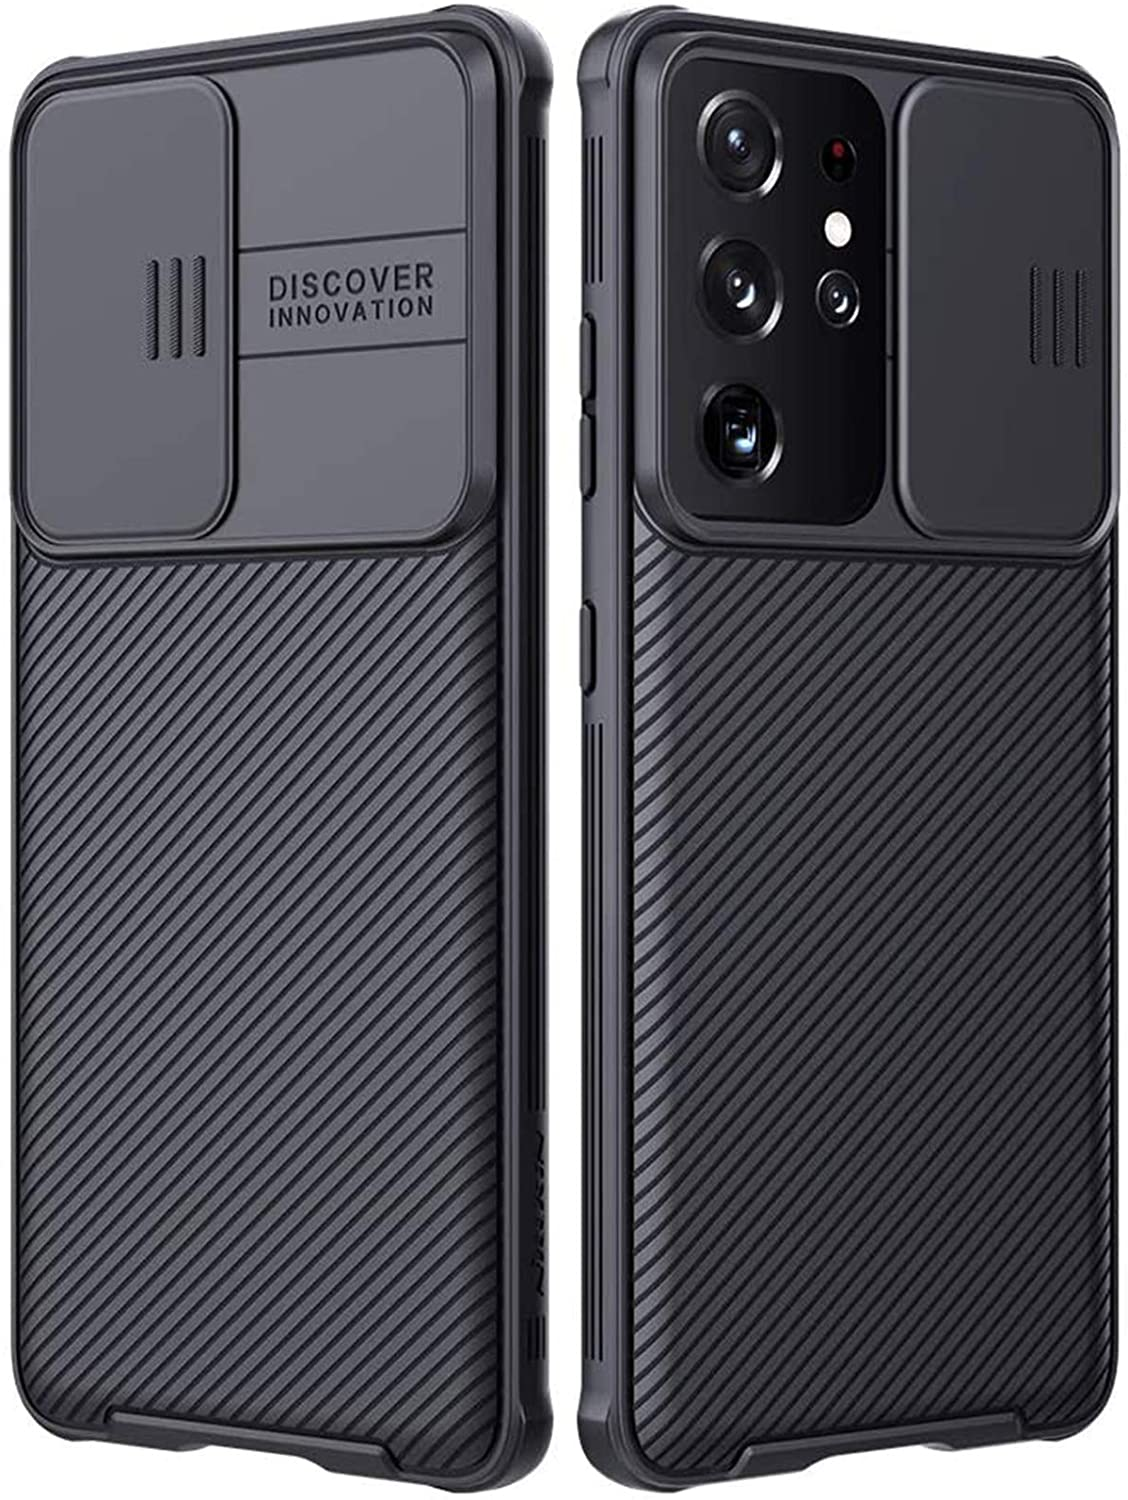 imluckies for Samsung Galaxy S21 Ultra Case with Camera Cover, Hard PC Back & Soft Bumper, Protective & Slim Fit, Camera Protection Case for Samsung Galaxy S21 Ultra 6.8